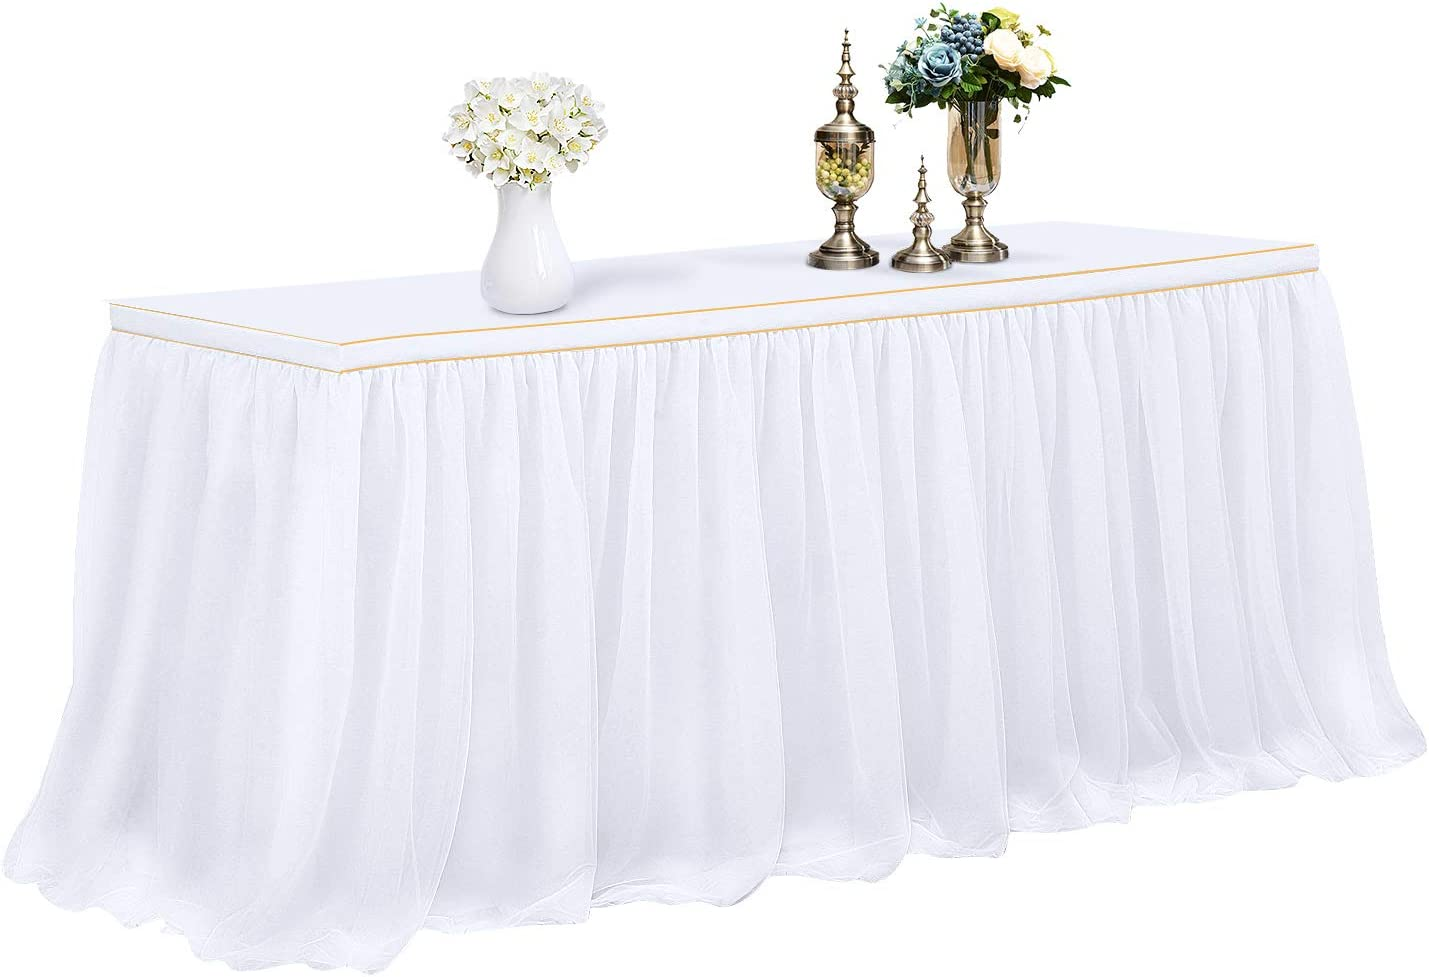 6FT X 0.8M, White CHIGER Tulle Table Skirt High-end Gold Brim Mesh Fluffy 2 Yards Tutu Table Skirt For Party,Wedding,Birthday Party/&Home Decoration